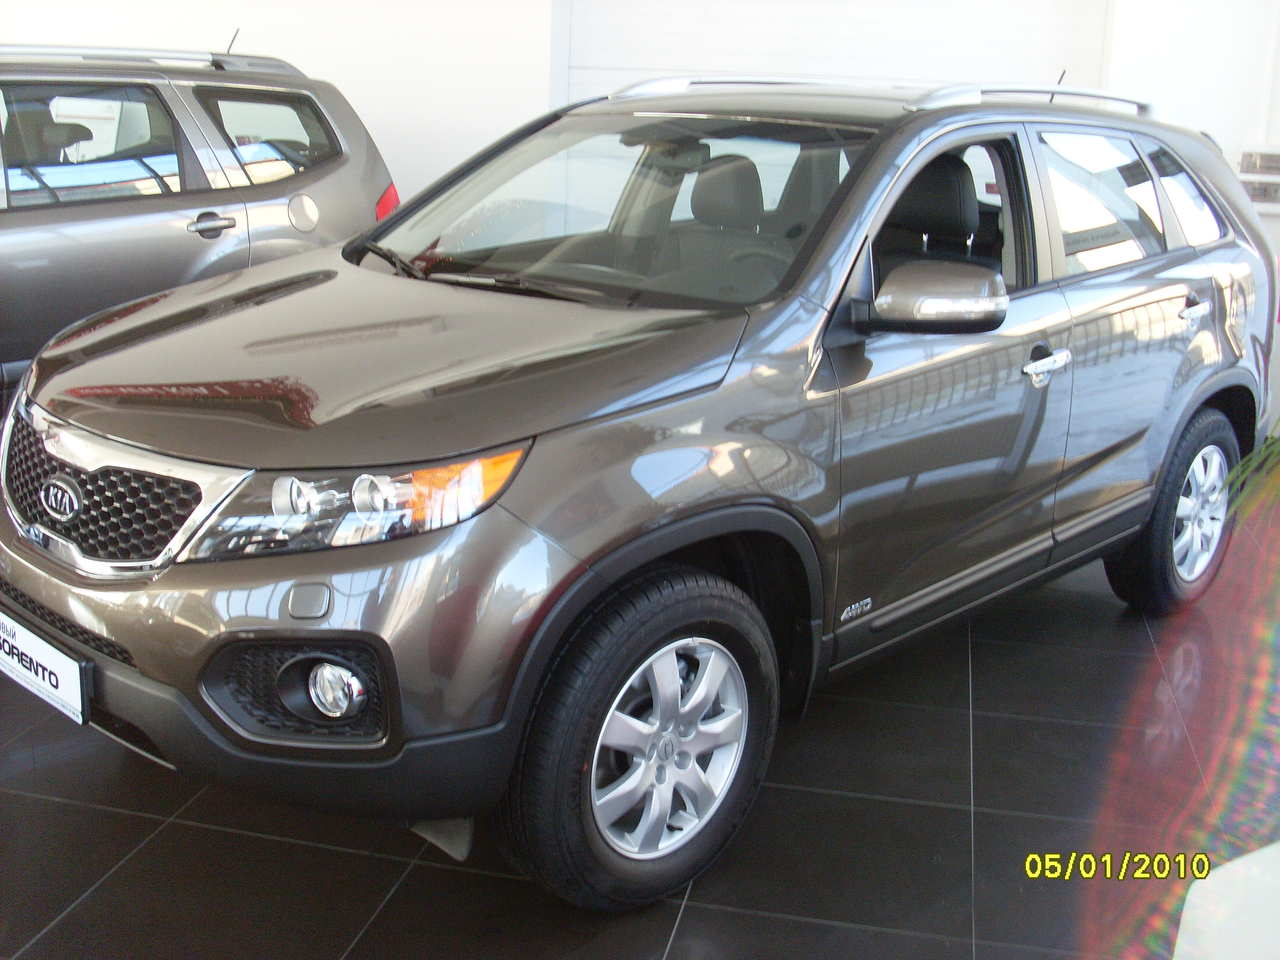 2010 kia sorento pictures gasoline automatic for sale. Black Bedroom Furniture Sets. Home Design Ideas